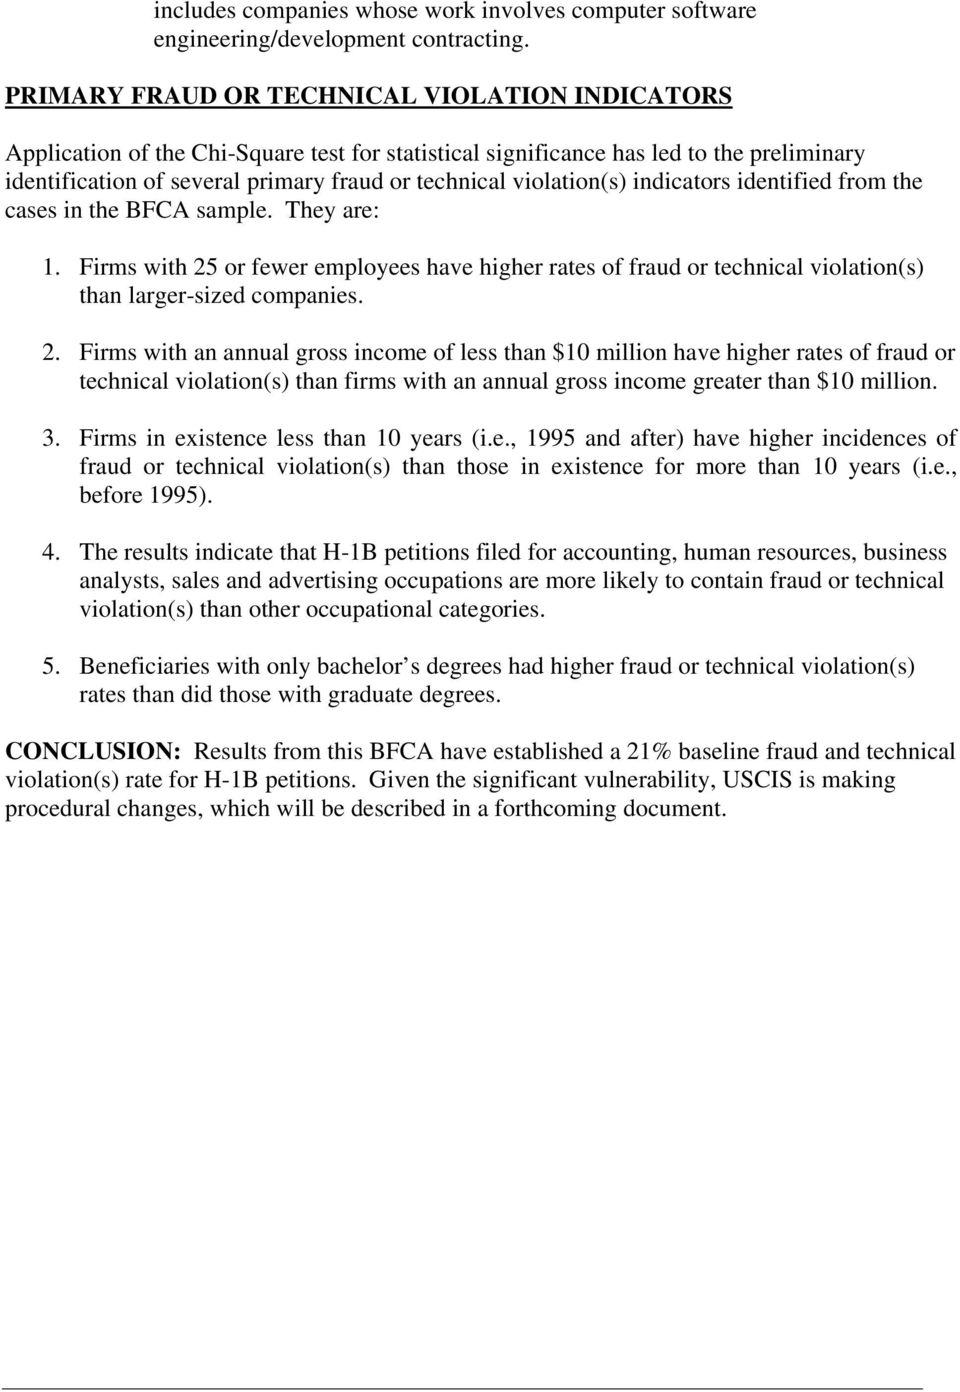 violation(s) indicators identified from the cases in the BFCA sample. They are: 1. Firms with 25